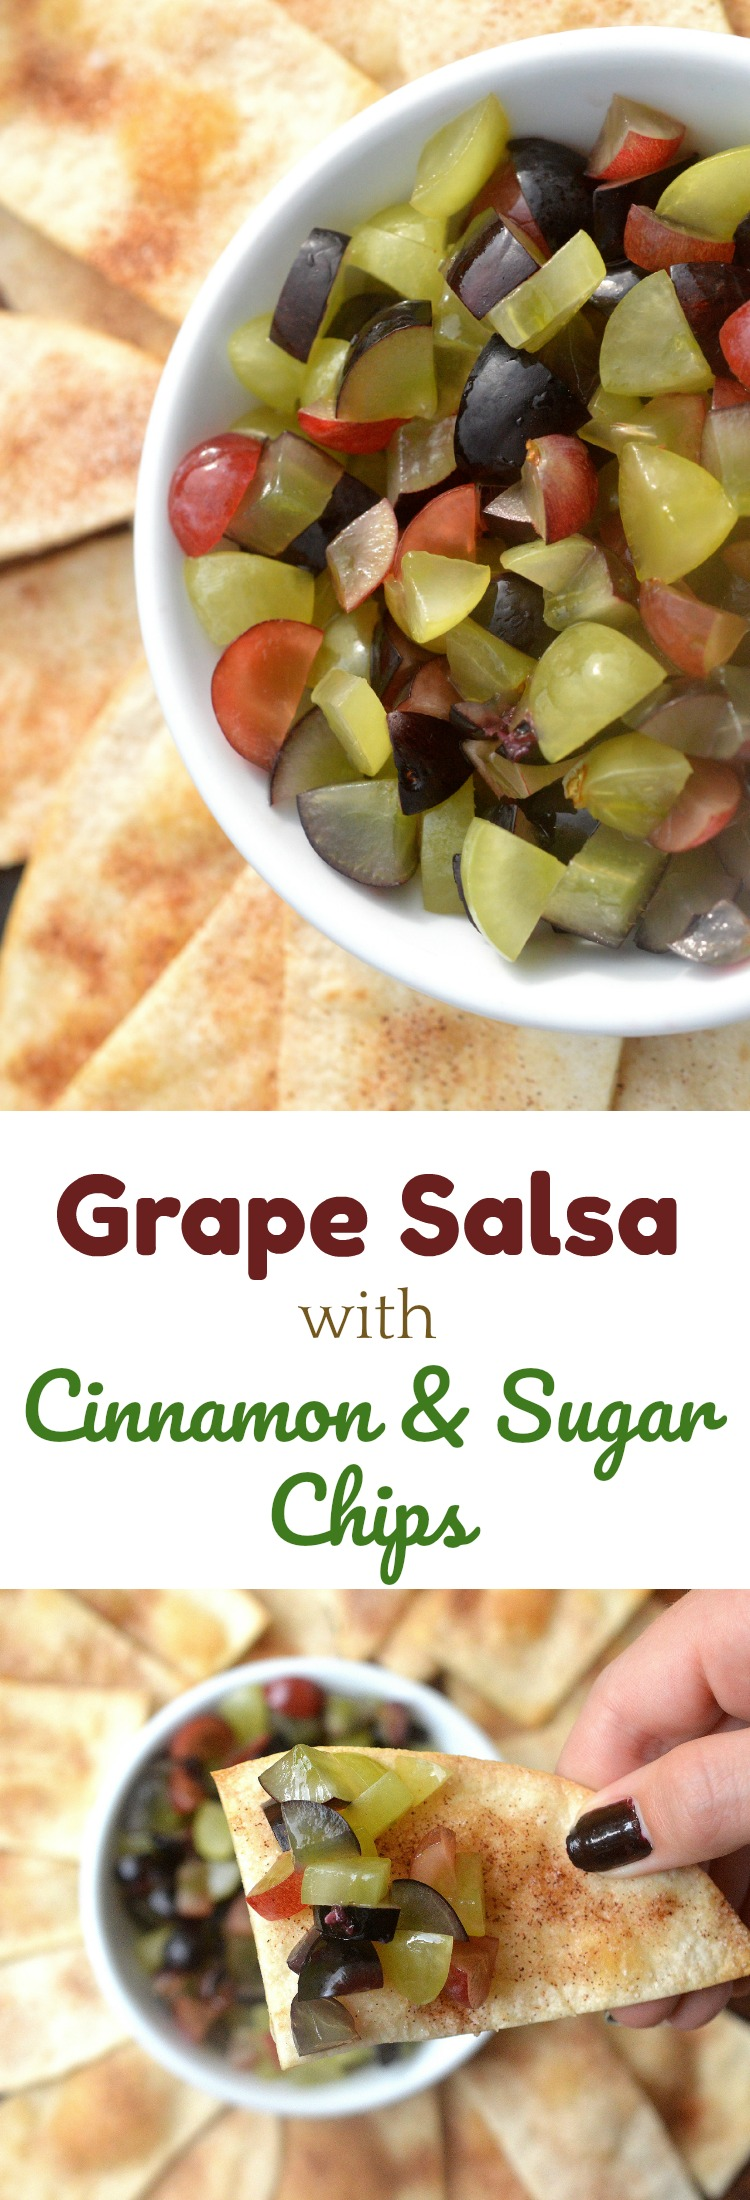 Grape Salsa with Cinnamon & Sugar Chips Yum! Easy, healthy & delicious!